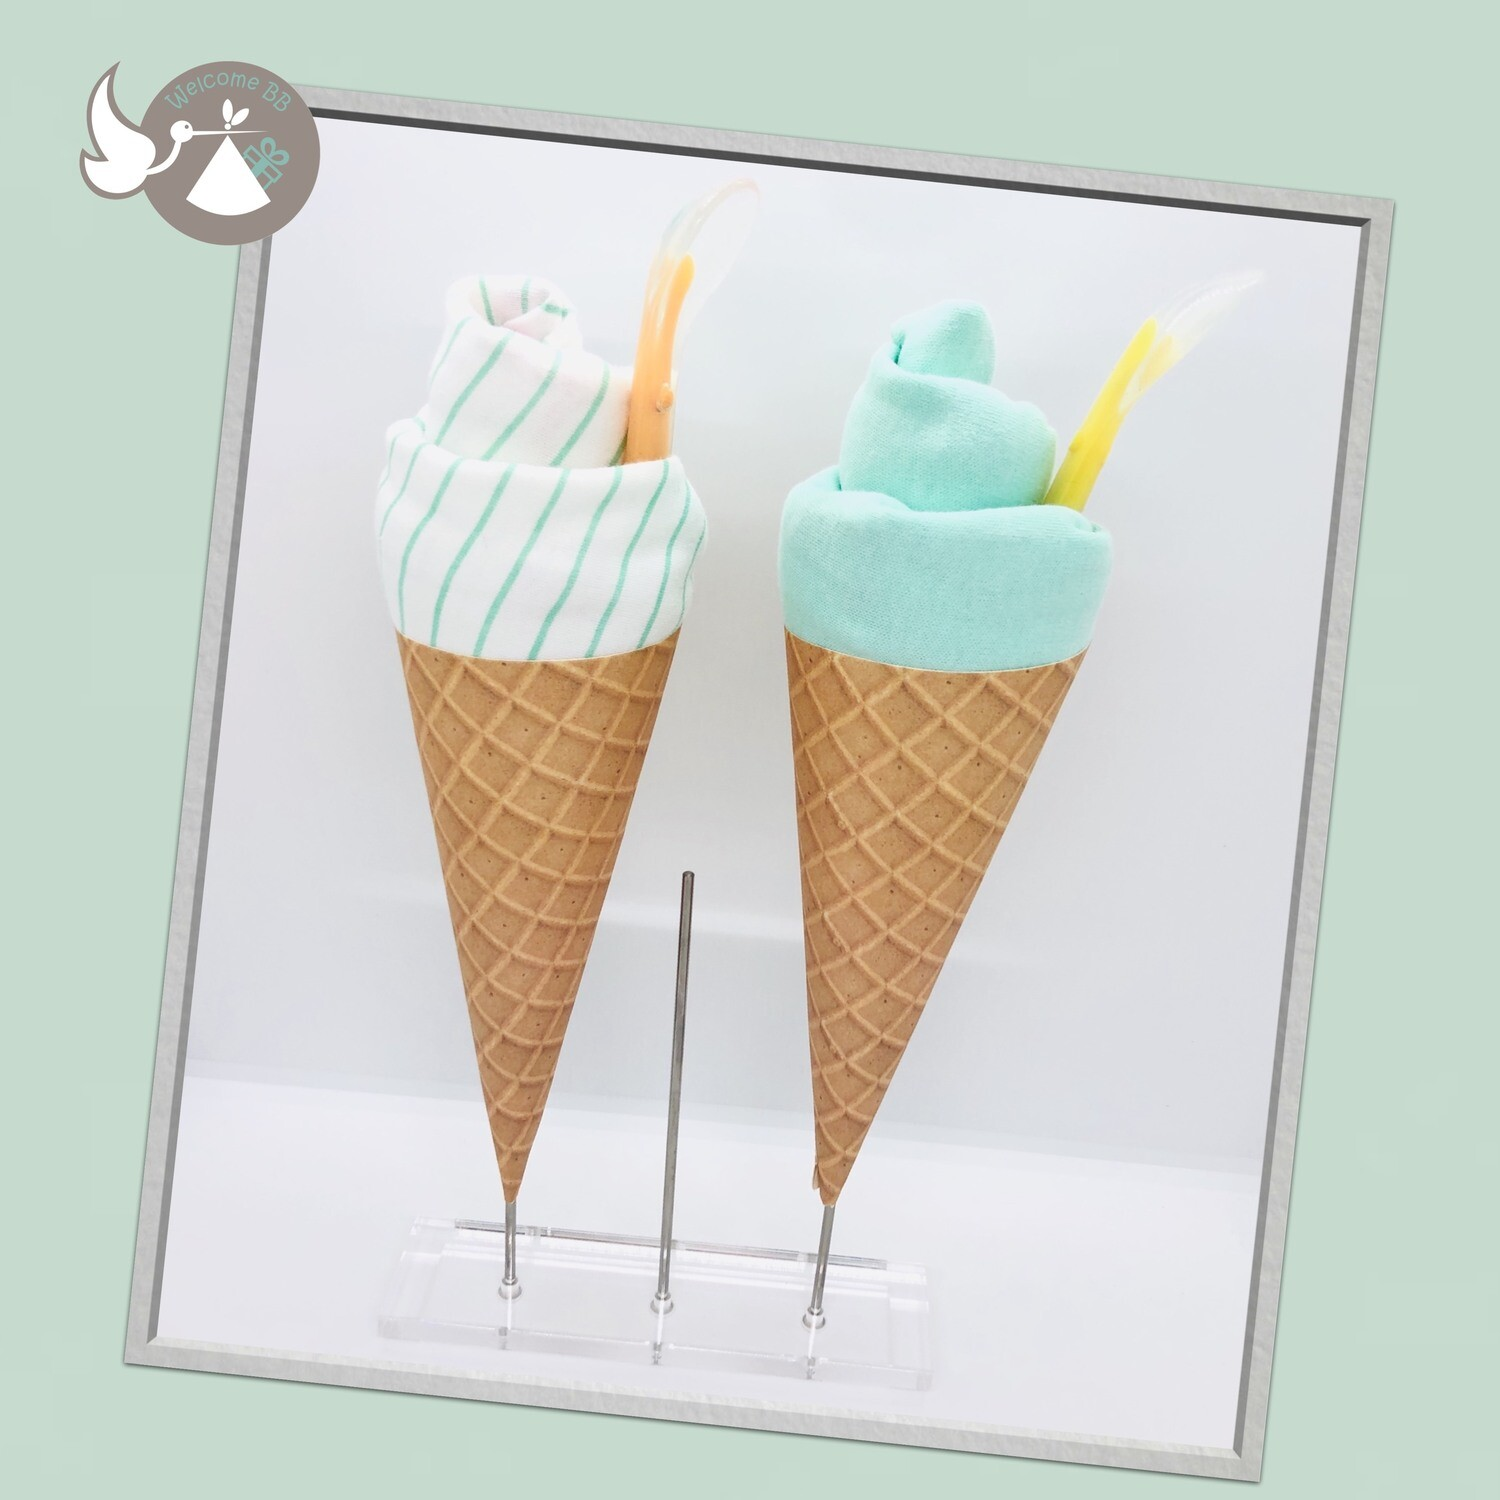 Glace menthe